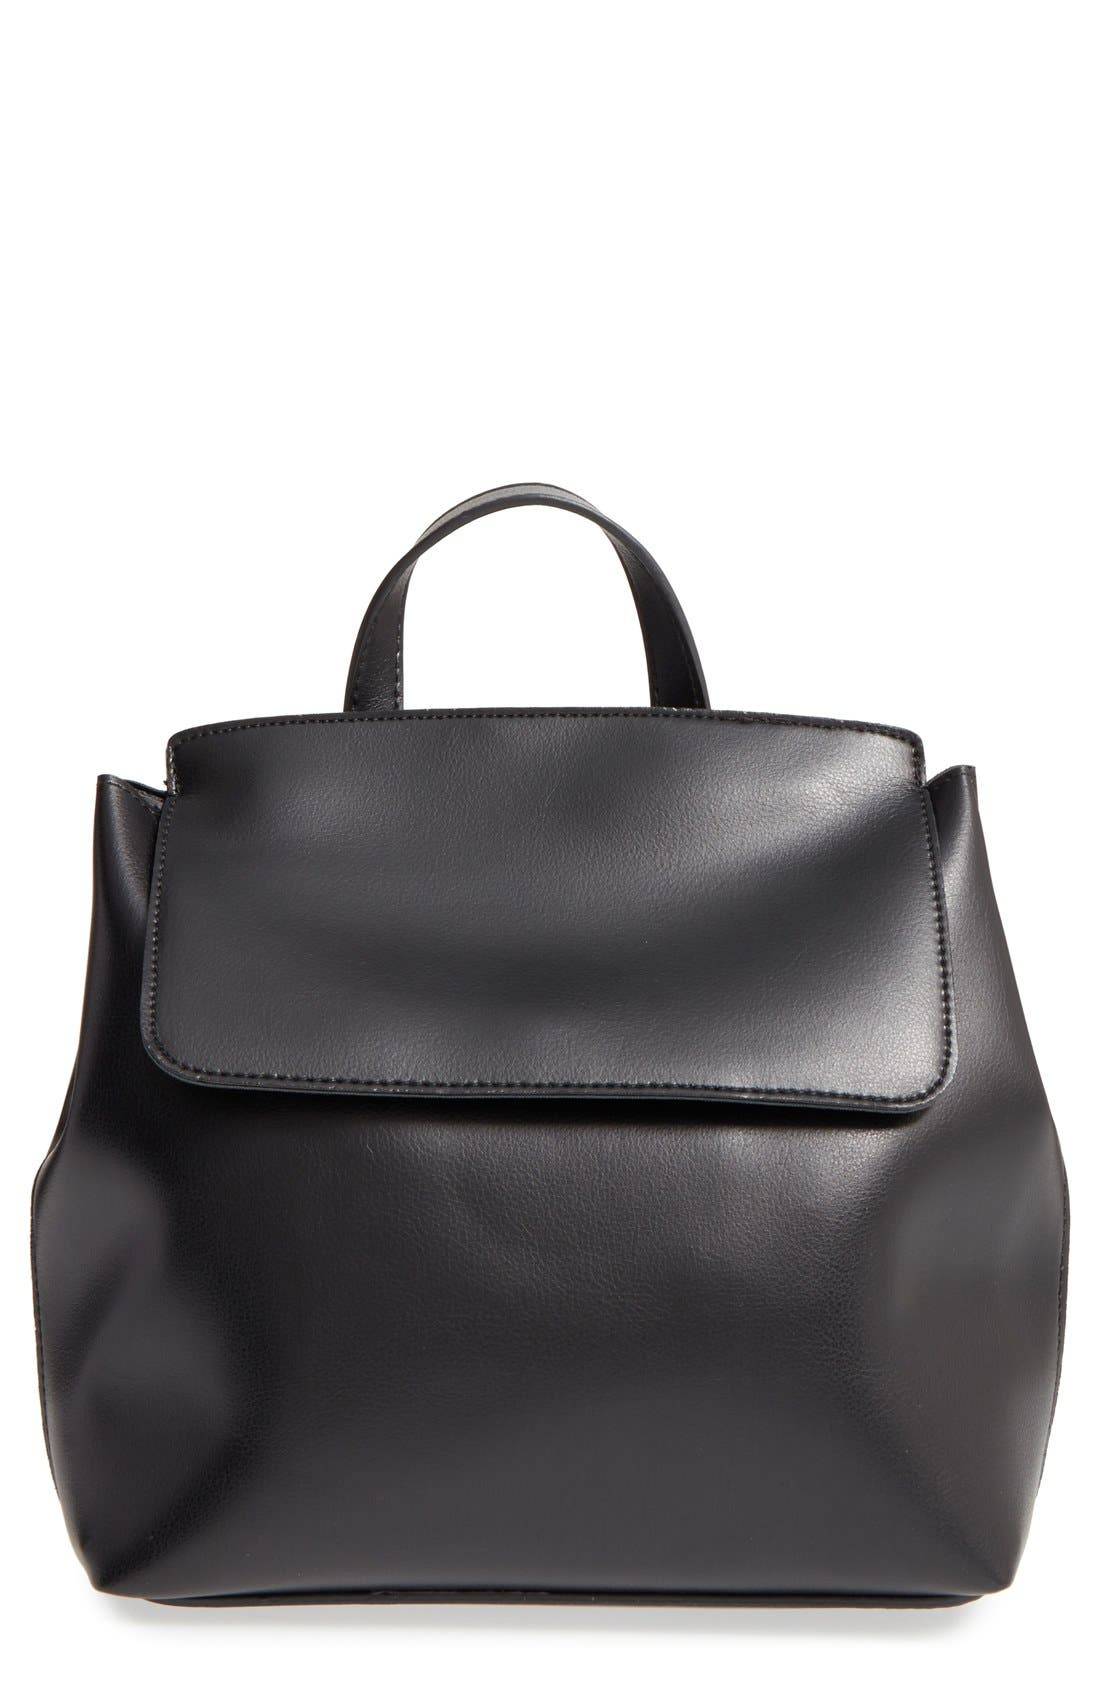 'Minimal Flap' Faux Leather Backpack,                             Main thumbnail 1, color,                             001